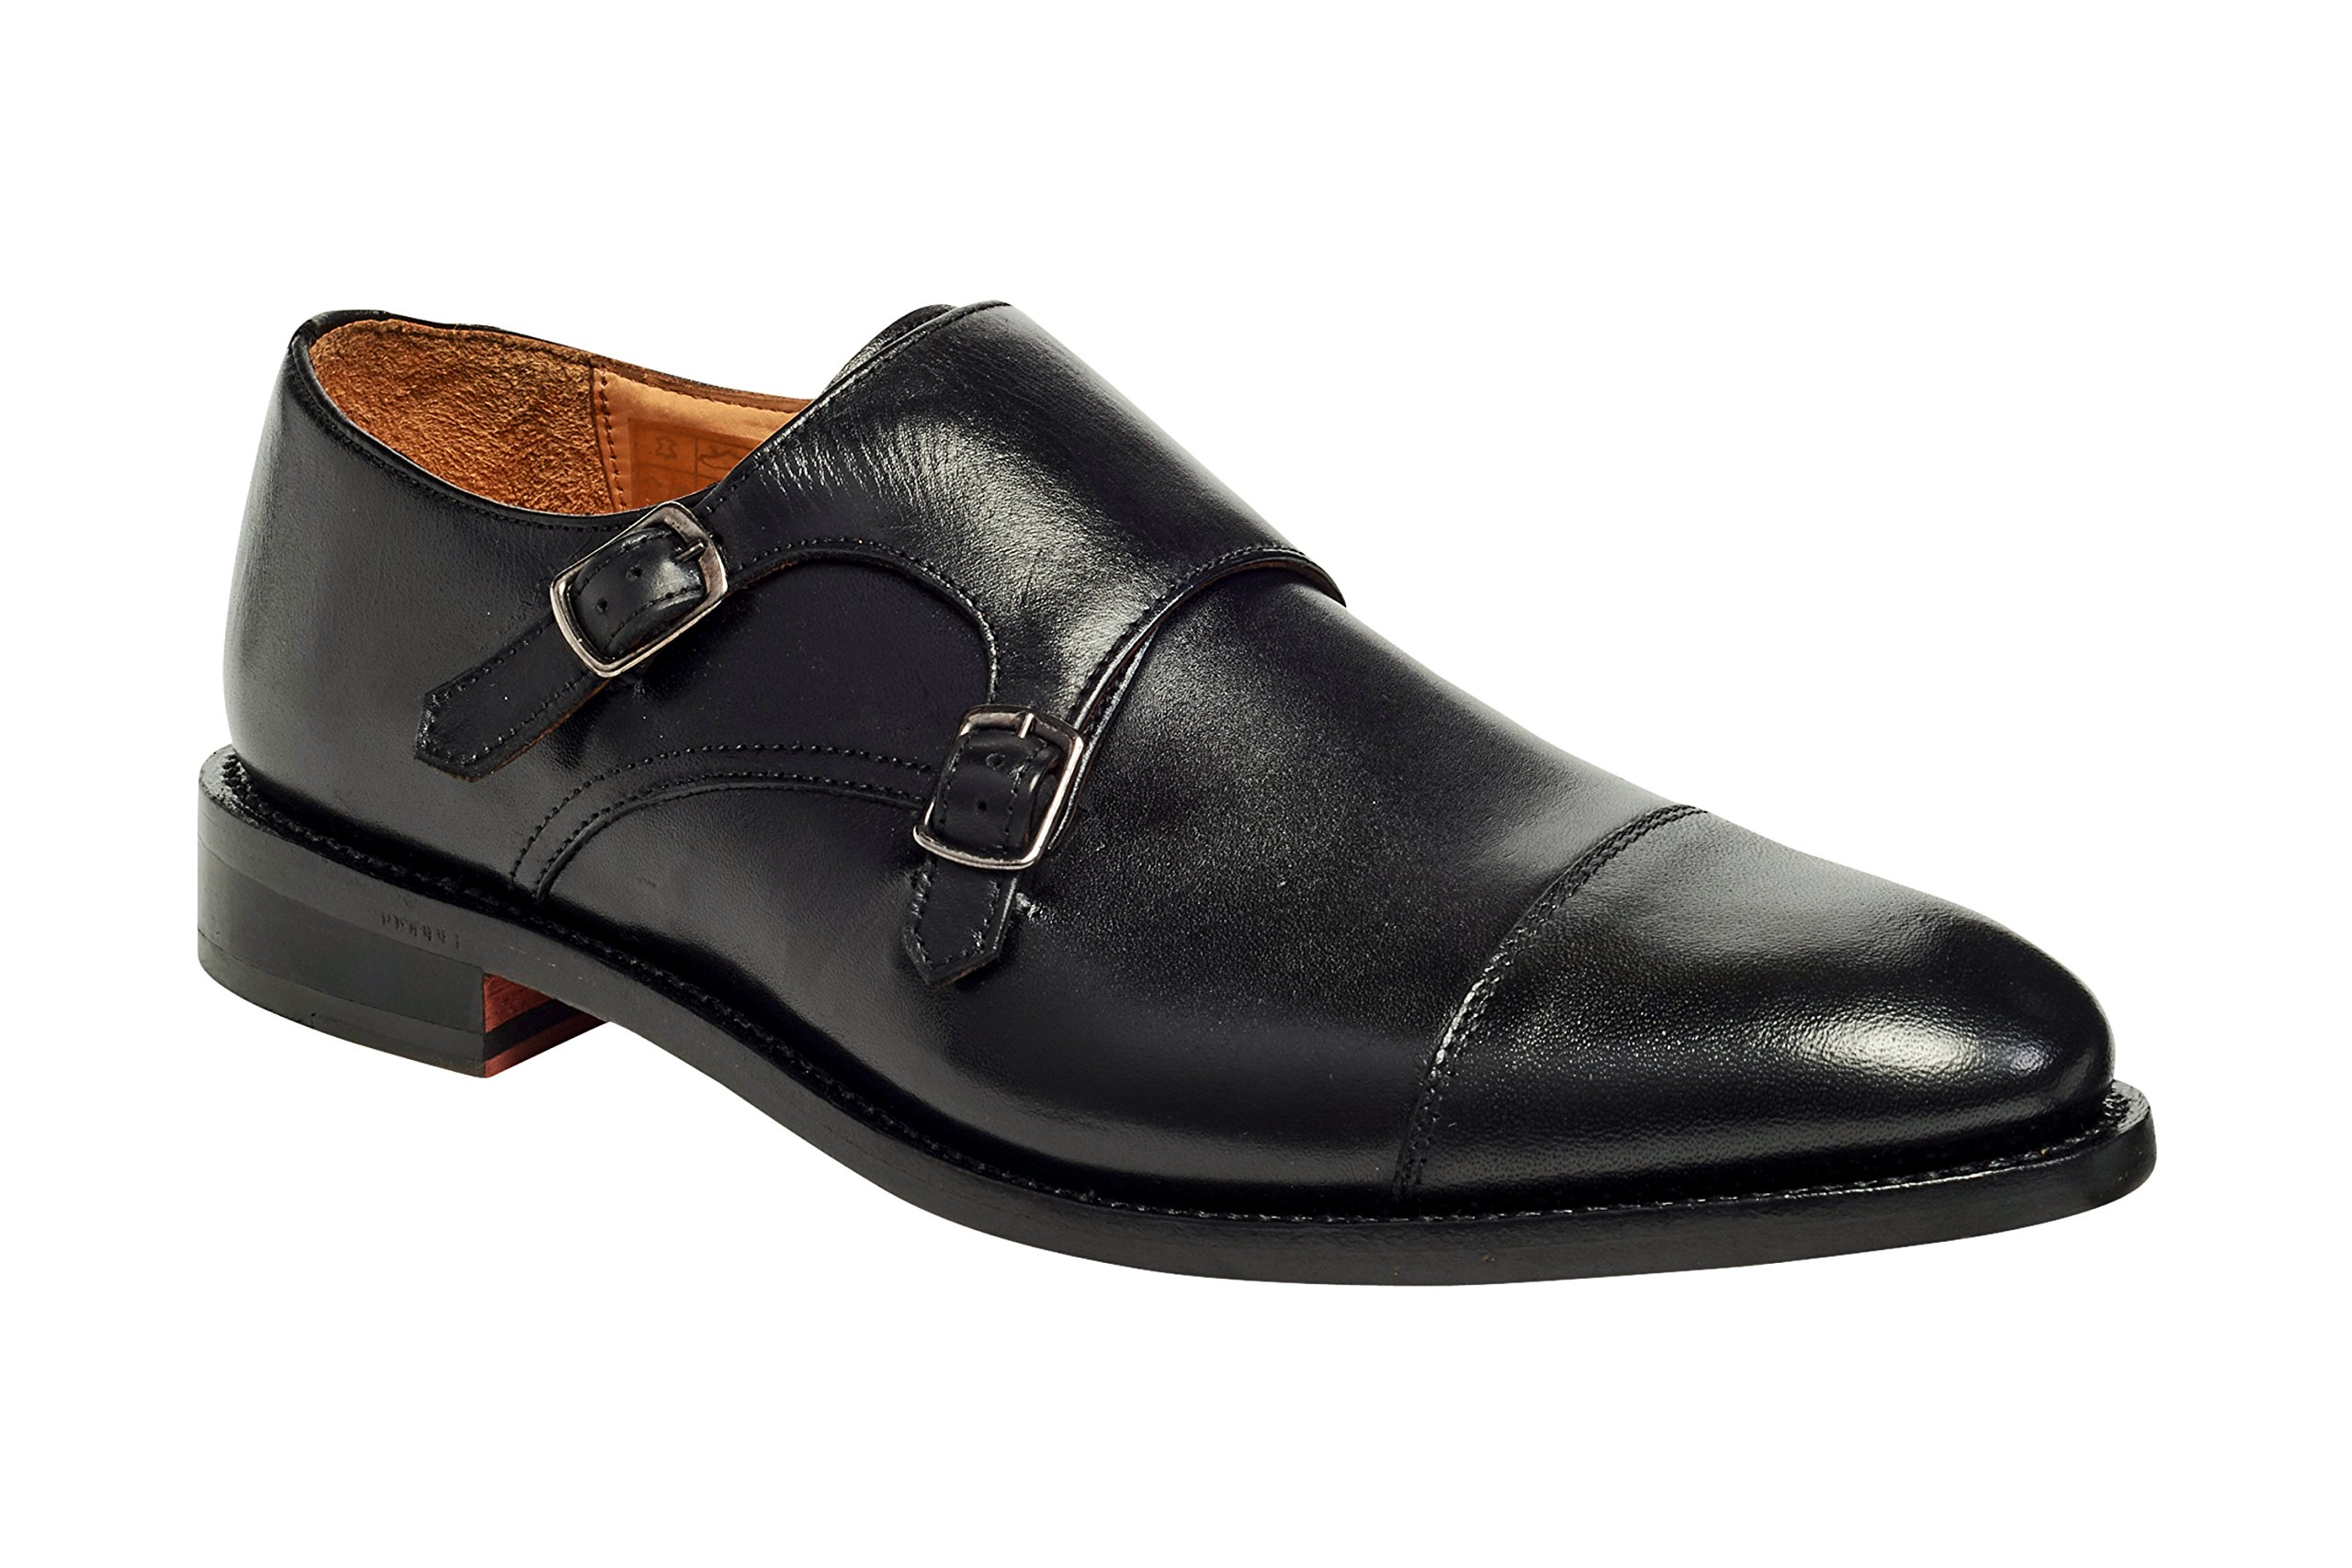 Anthony Veer Mens Roosevelt II Oxford Double Monk Strap Leather Shoe In Goodyear Welted Construction (10 D, Black)